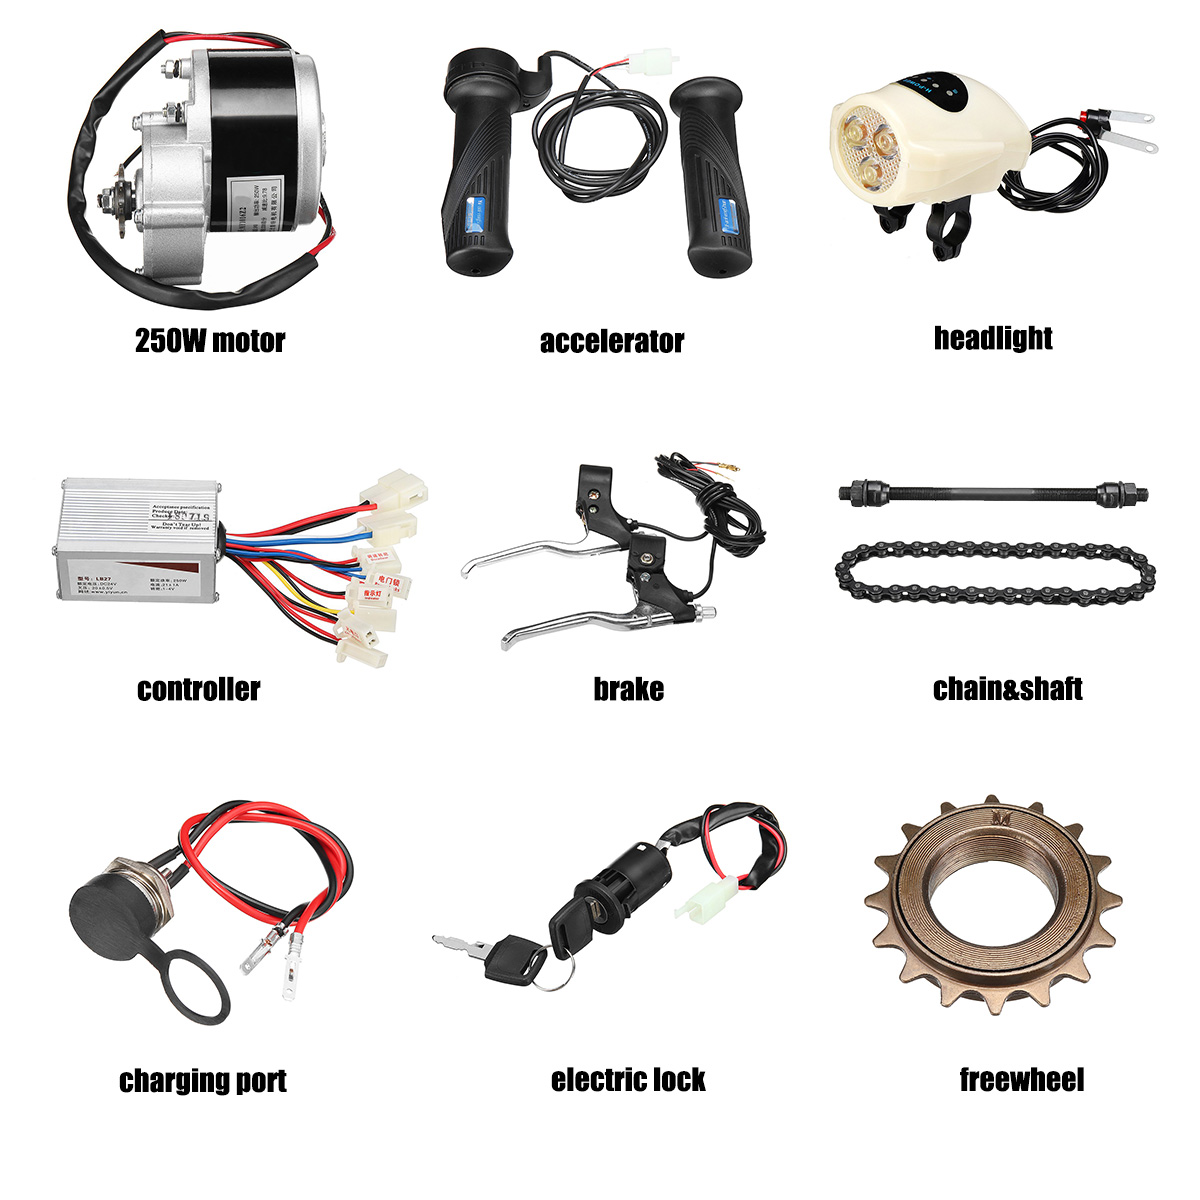 24V 250W 3300rpm Motor Controller Conversion Kit for 22-28 Bicycle Electric US